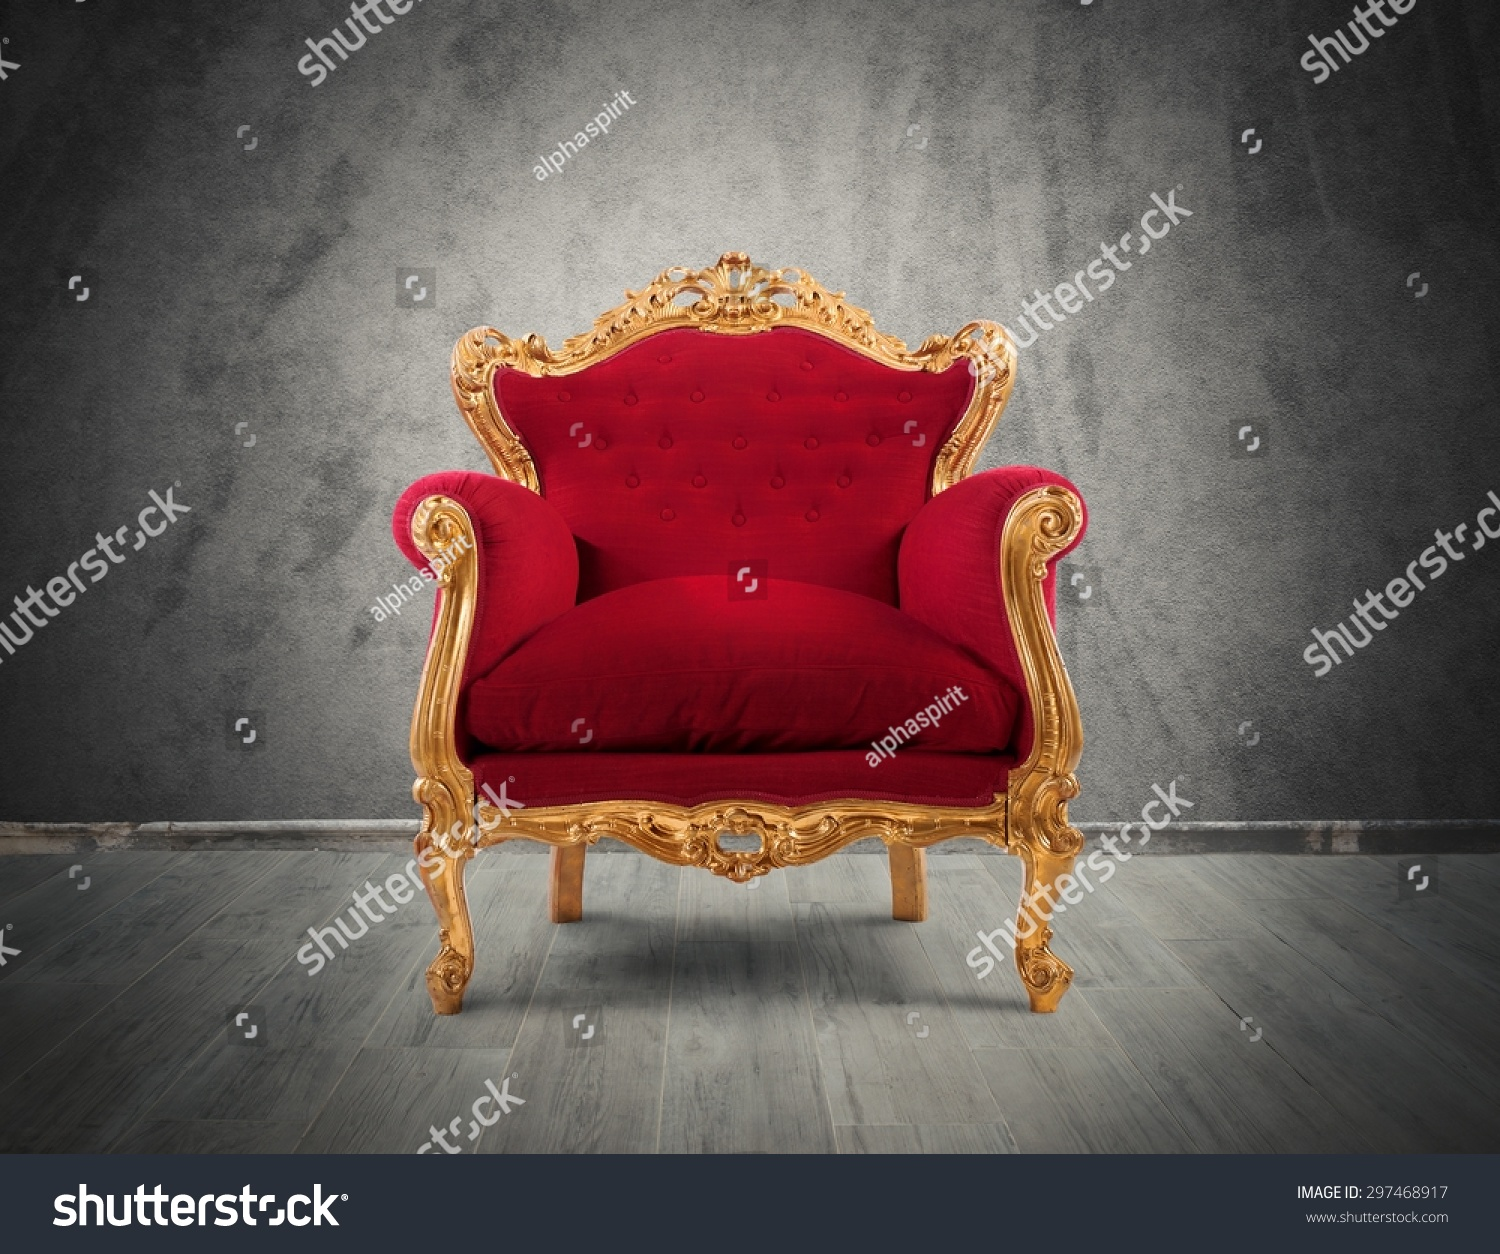 Concept luxury success red velvet gold stock photo 297468917 shutterstock - Velvet concept immobilier ...